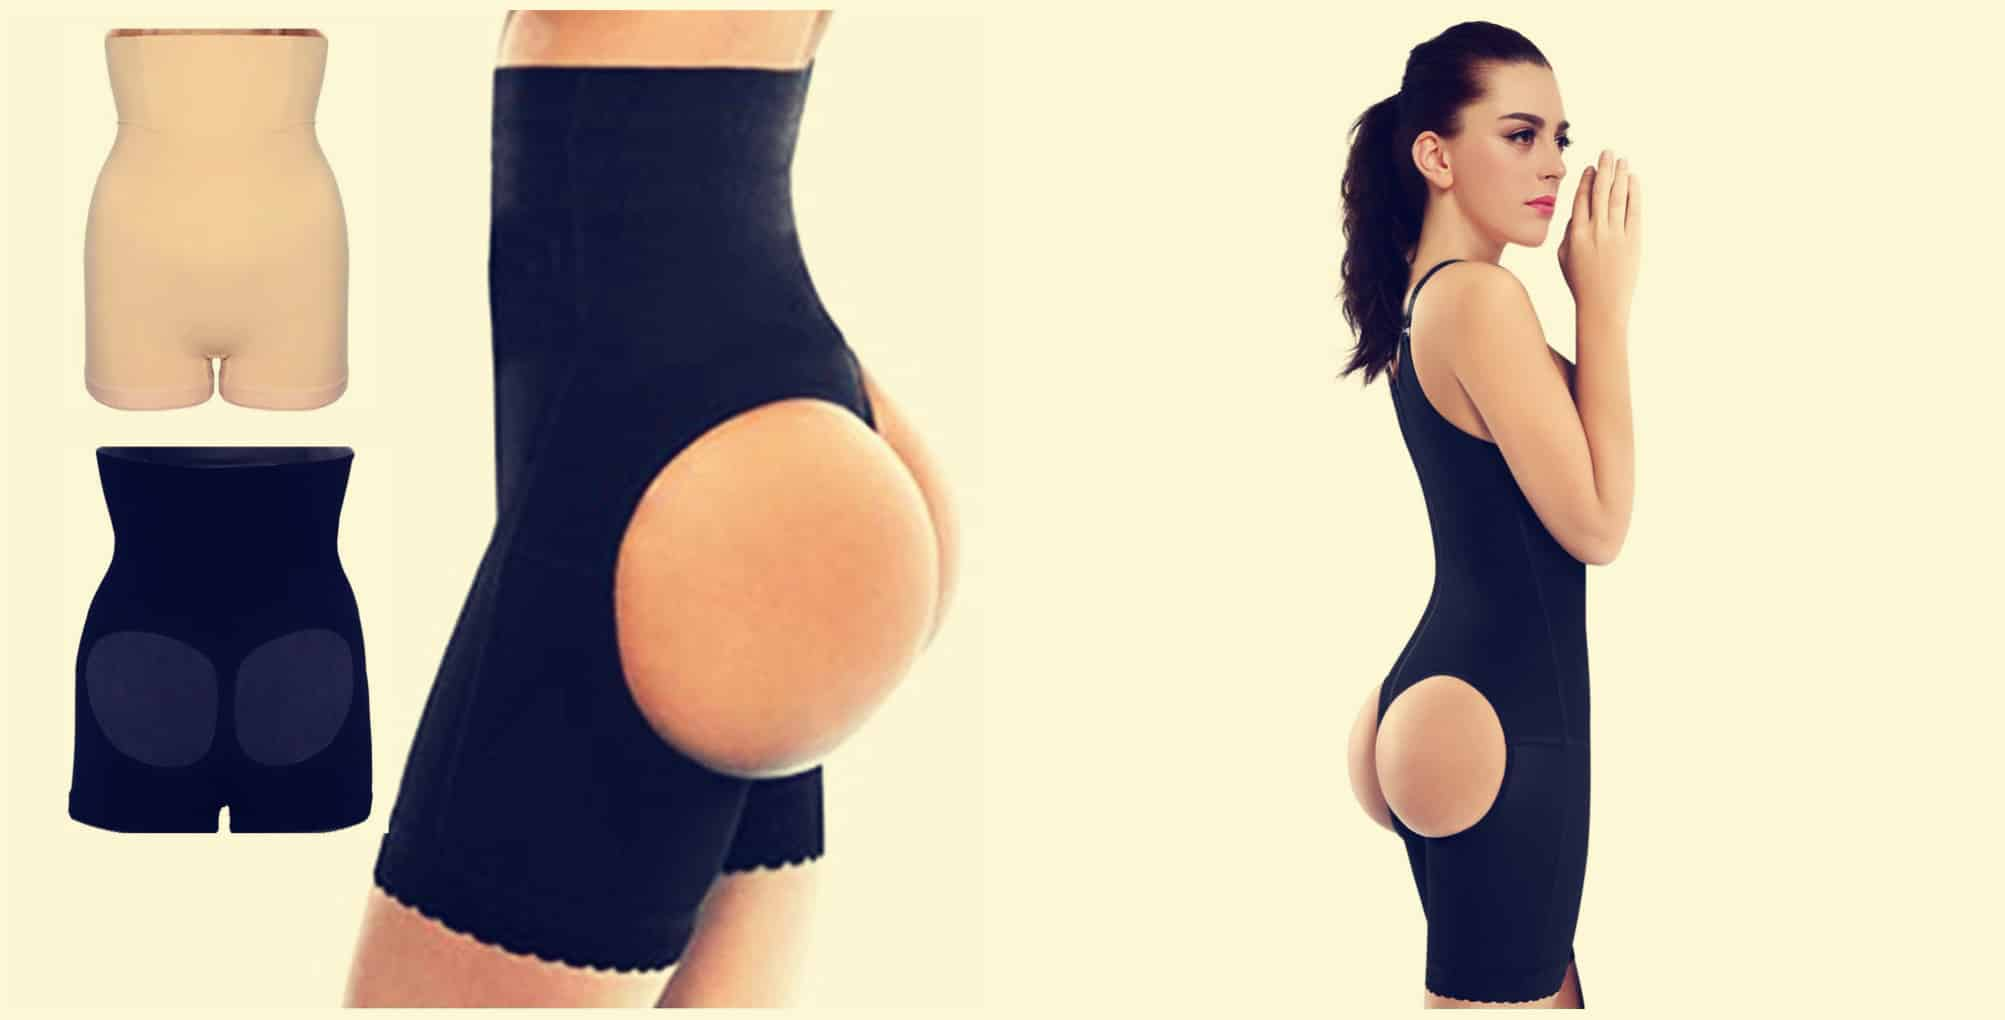 The Wonders of Butt Lifting and Waist Training